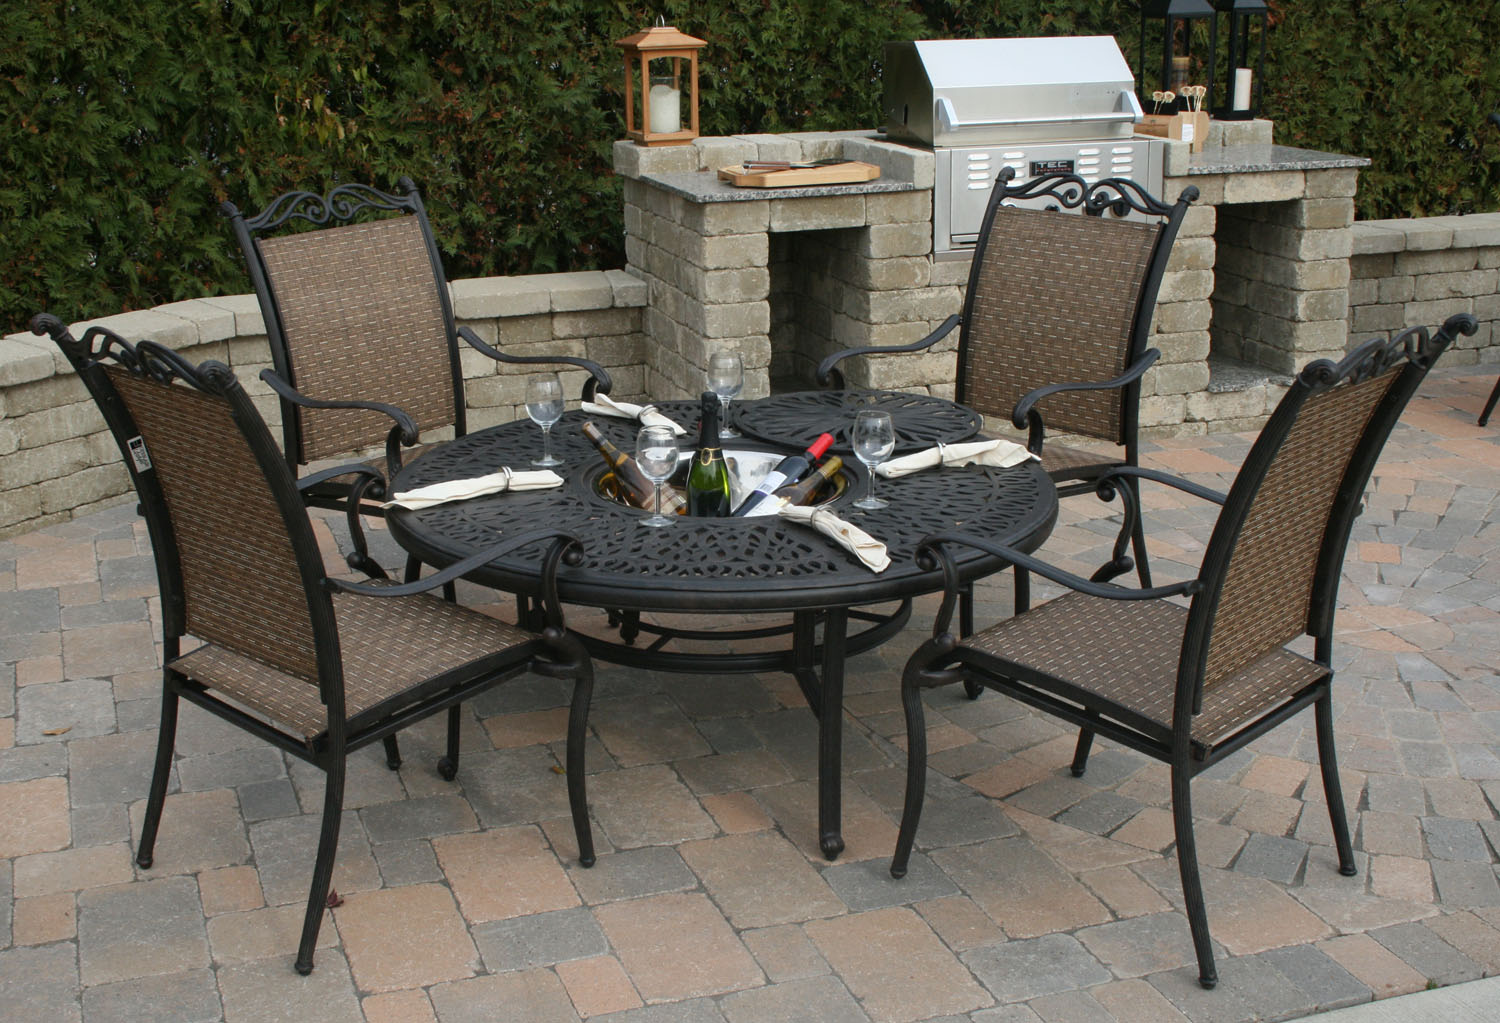 Follow these tips to choose the best patio furniture